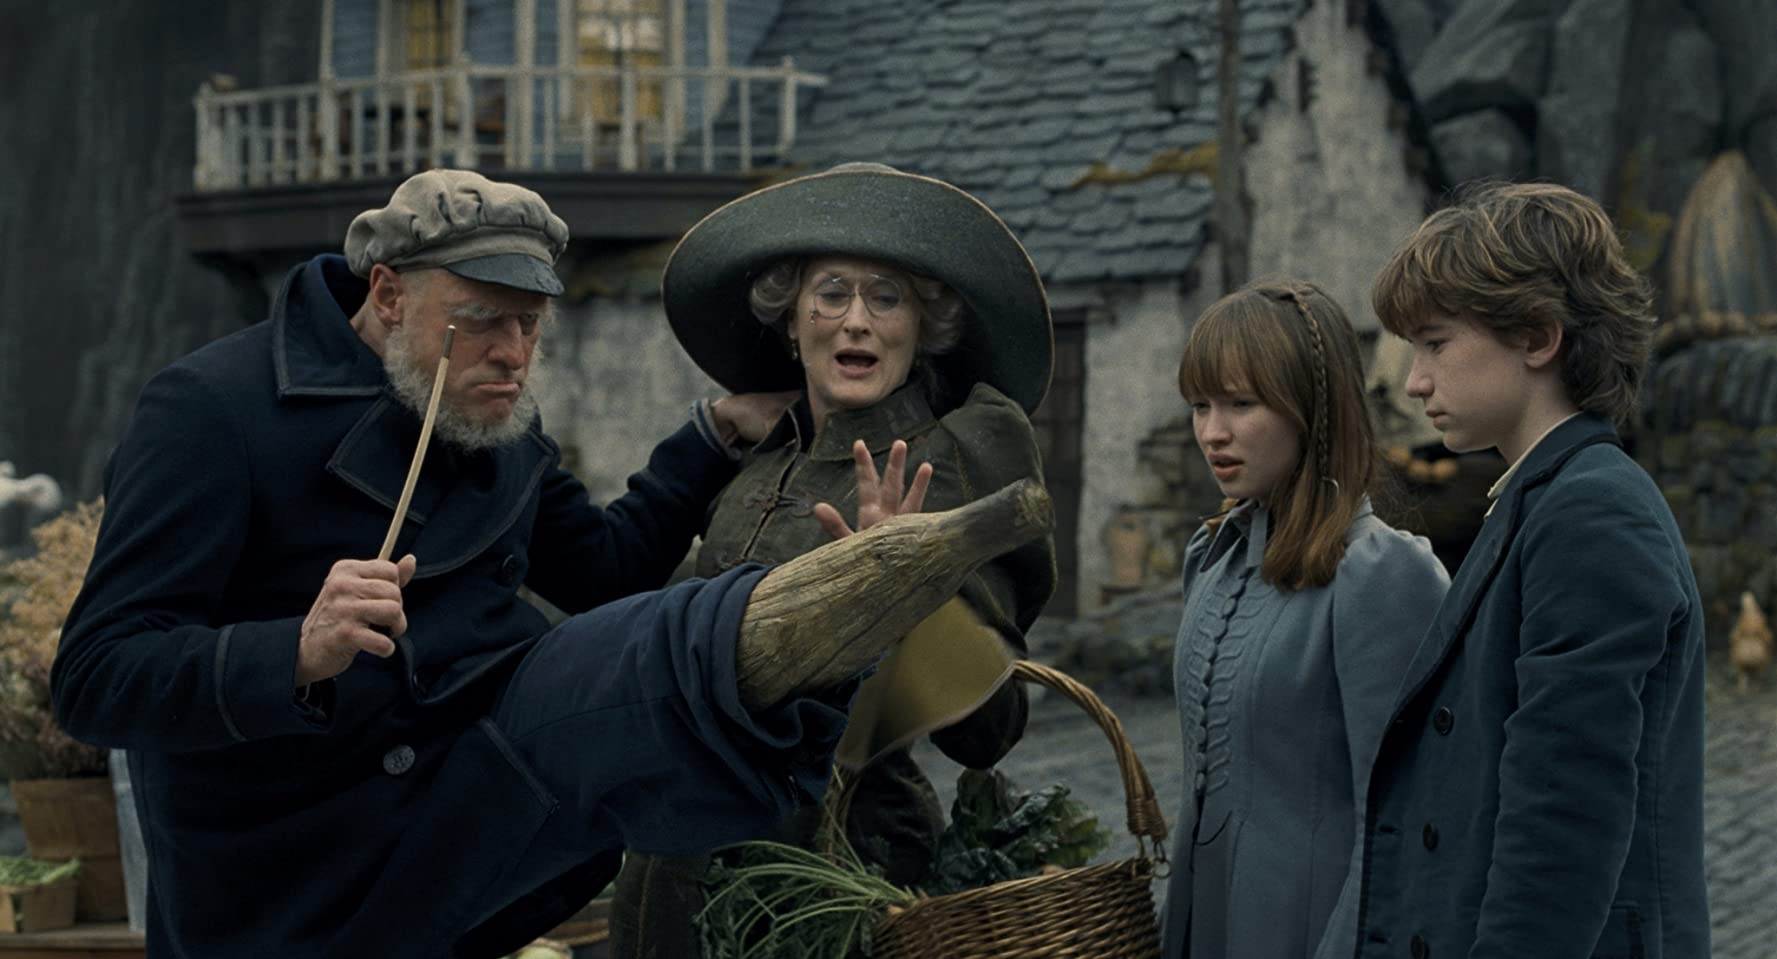 Jim Carrey, Meryl Streep, Liam Aiken, and Emily Browning in A Series of Unfortunate Events (2004)